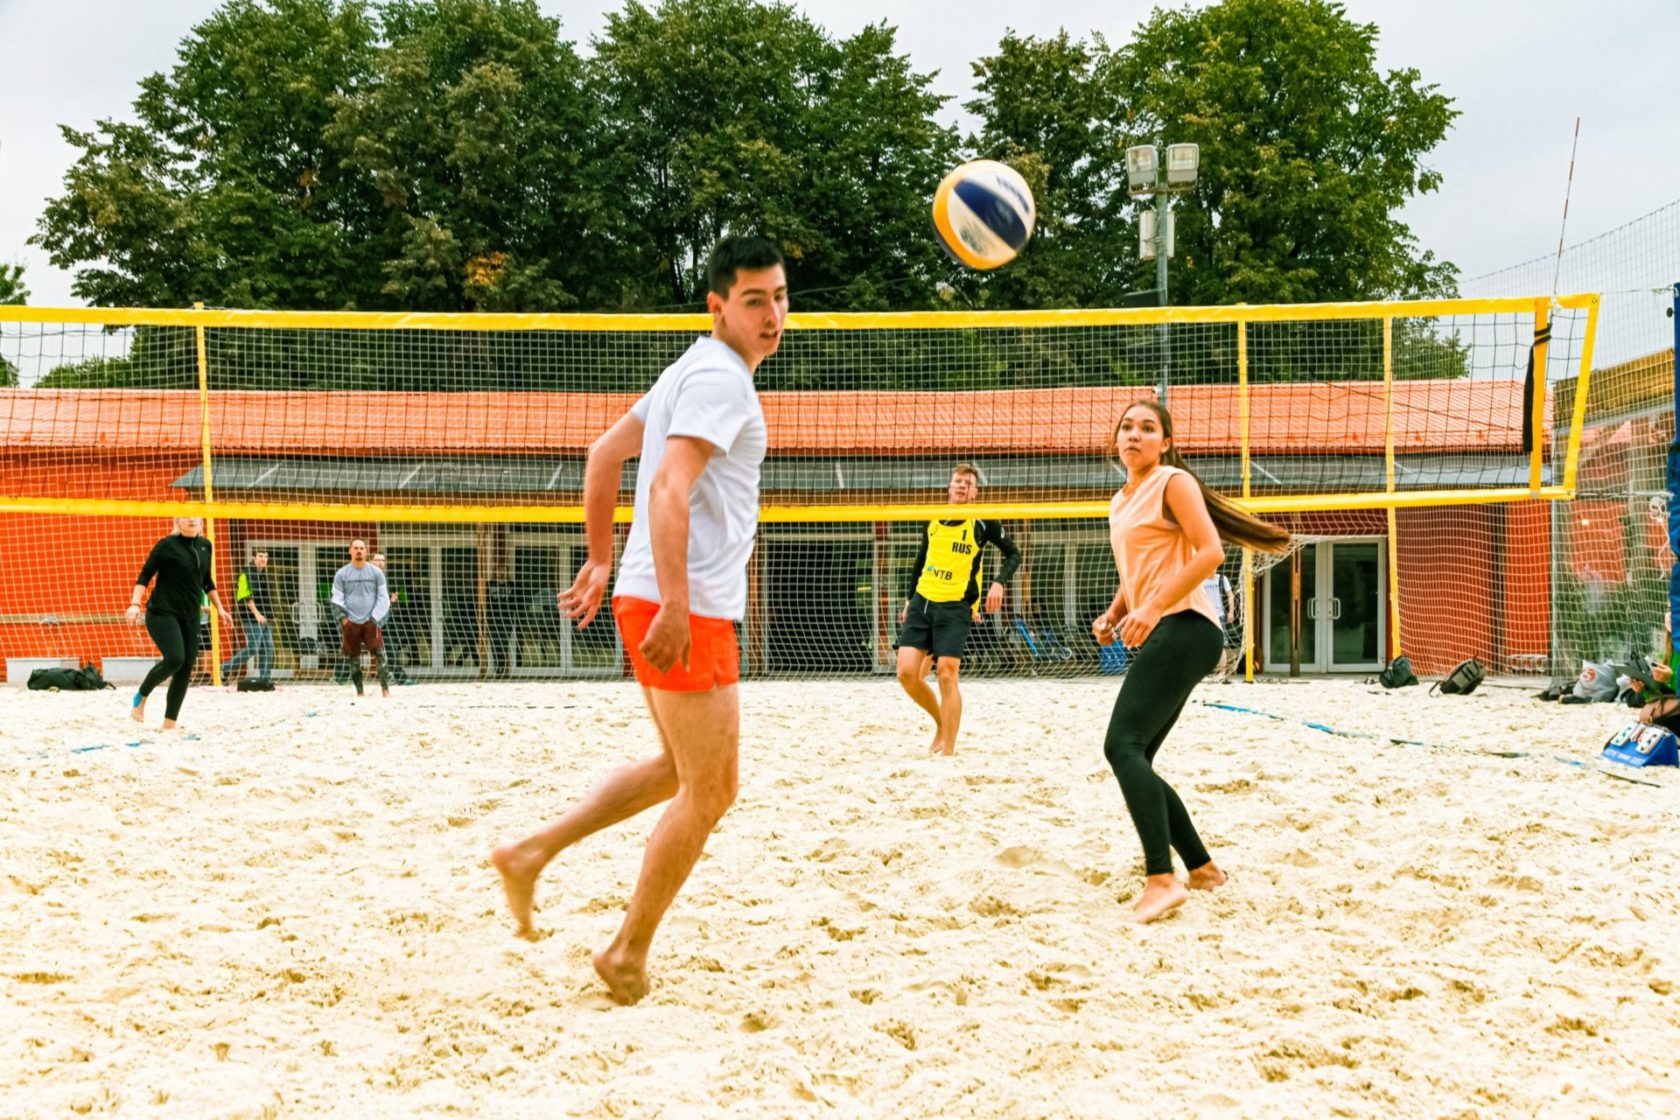 Don't sit out family volleyball build muscular strength